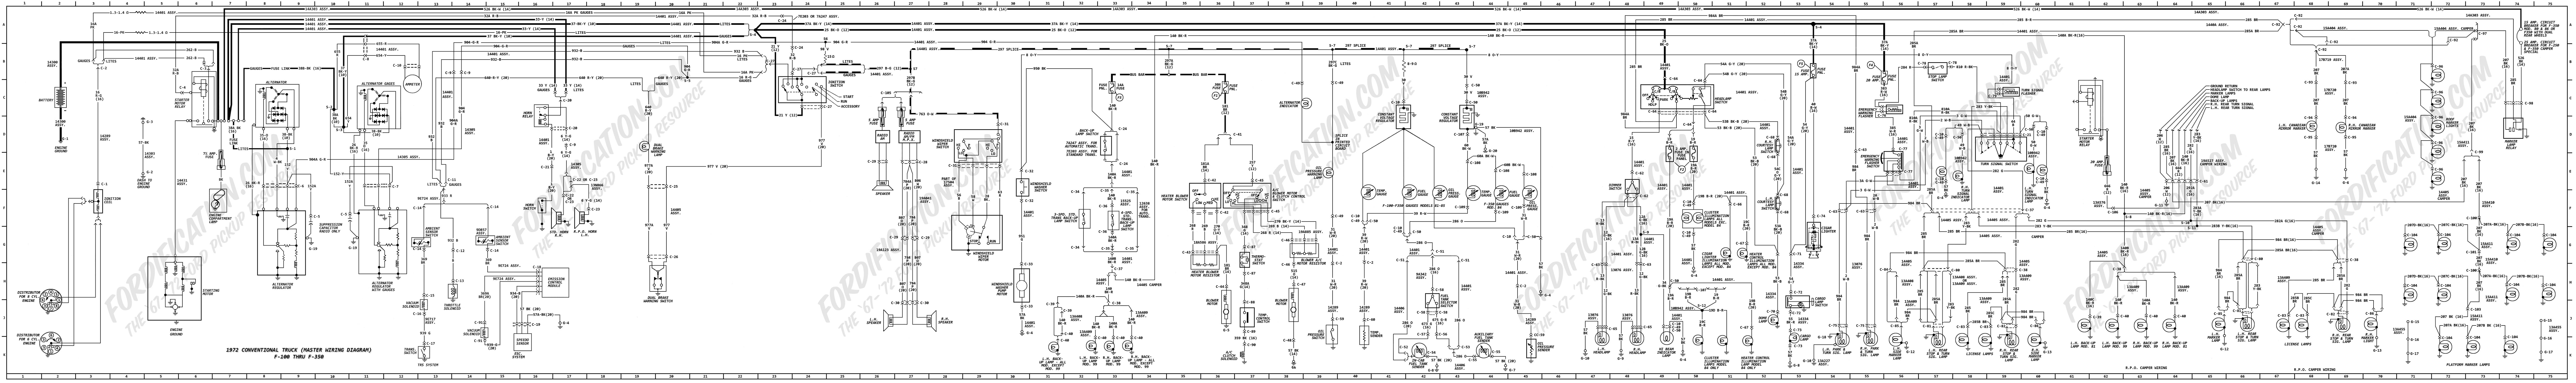 72 ford f100 wiring diagram honda goldwing gl1800 no power to fuel gauge sending unit truck